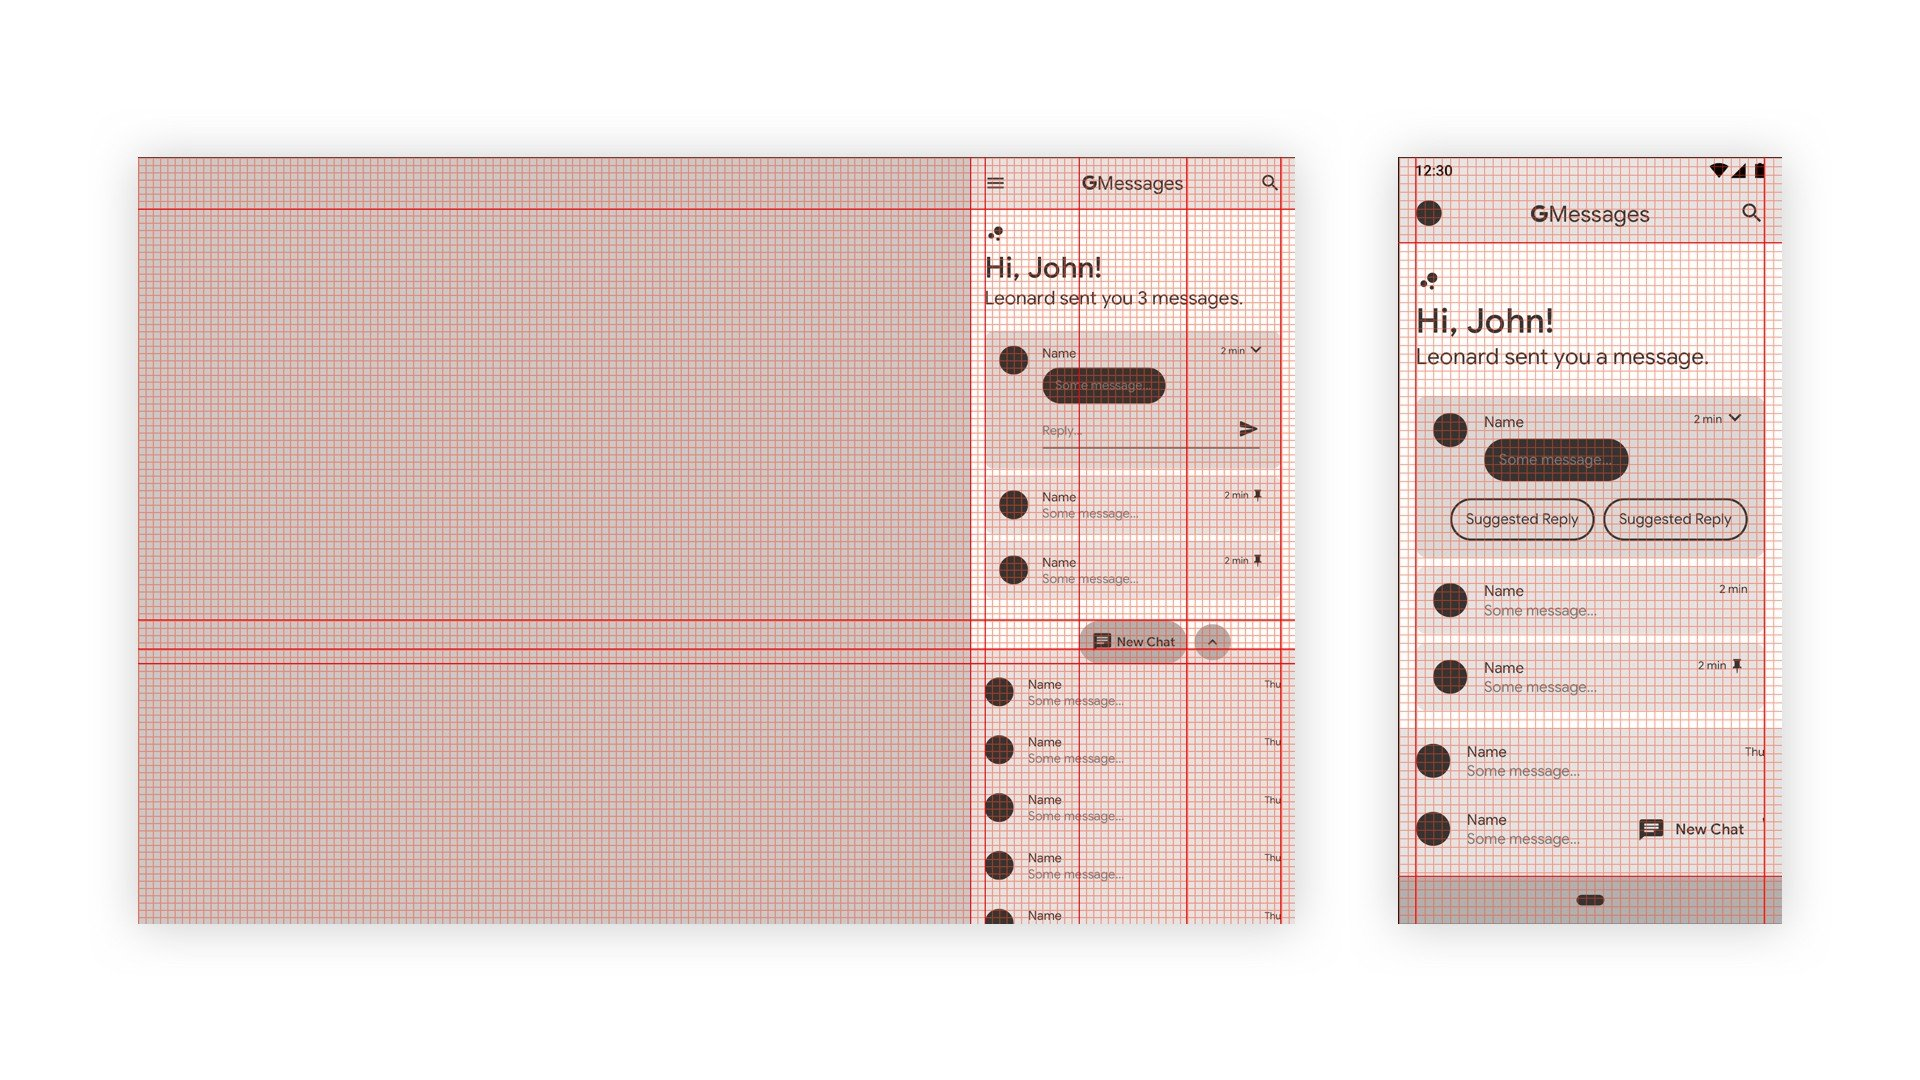 Both desktop and mobile align to an 8dp grid with 16dp margins.